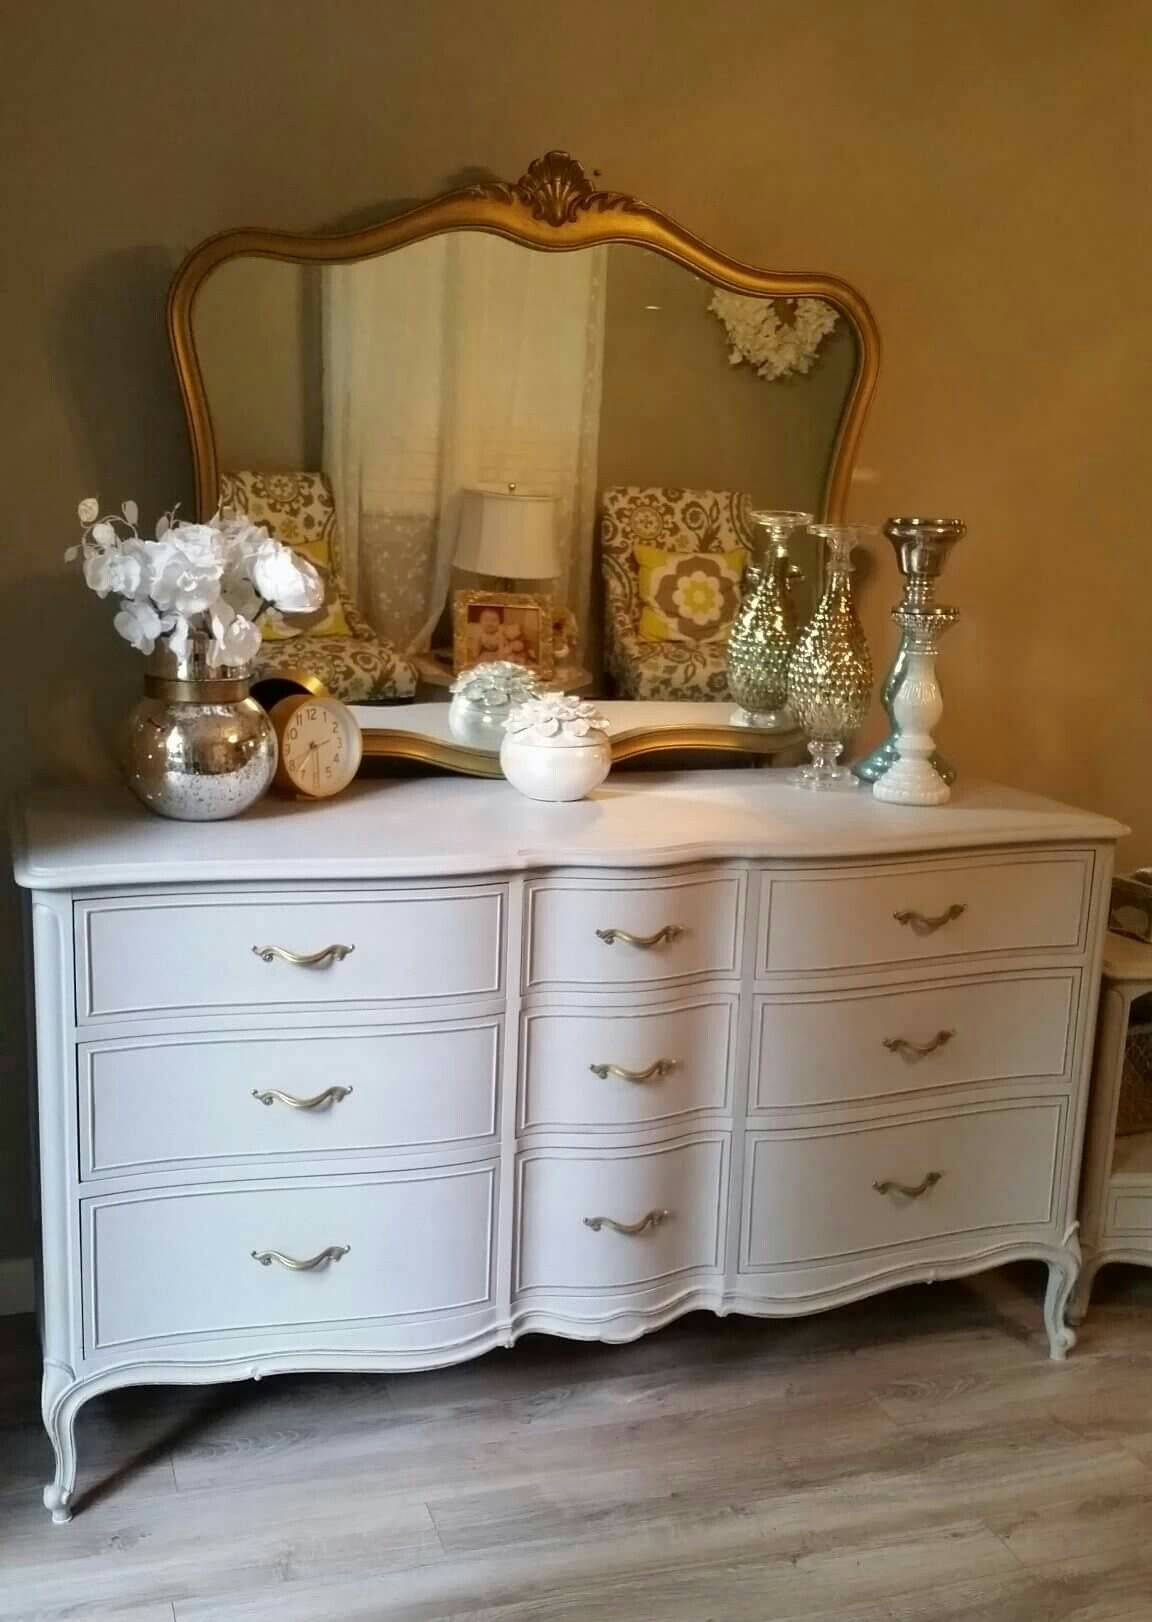 Upcycled Repurposed And Refinished This Dixie Dresser And